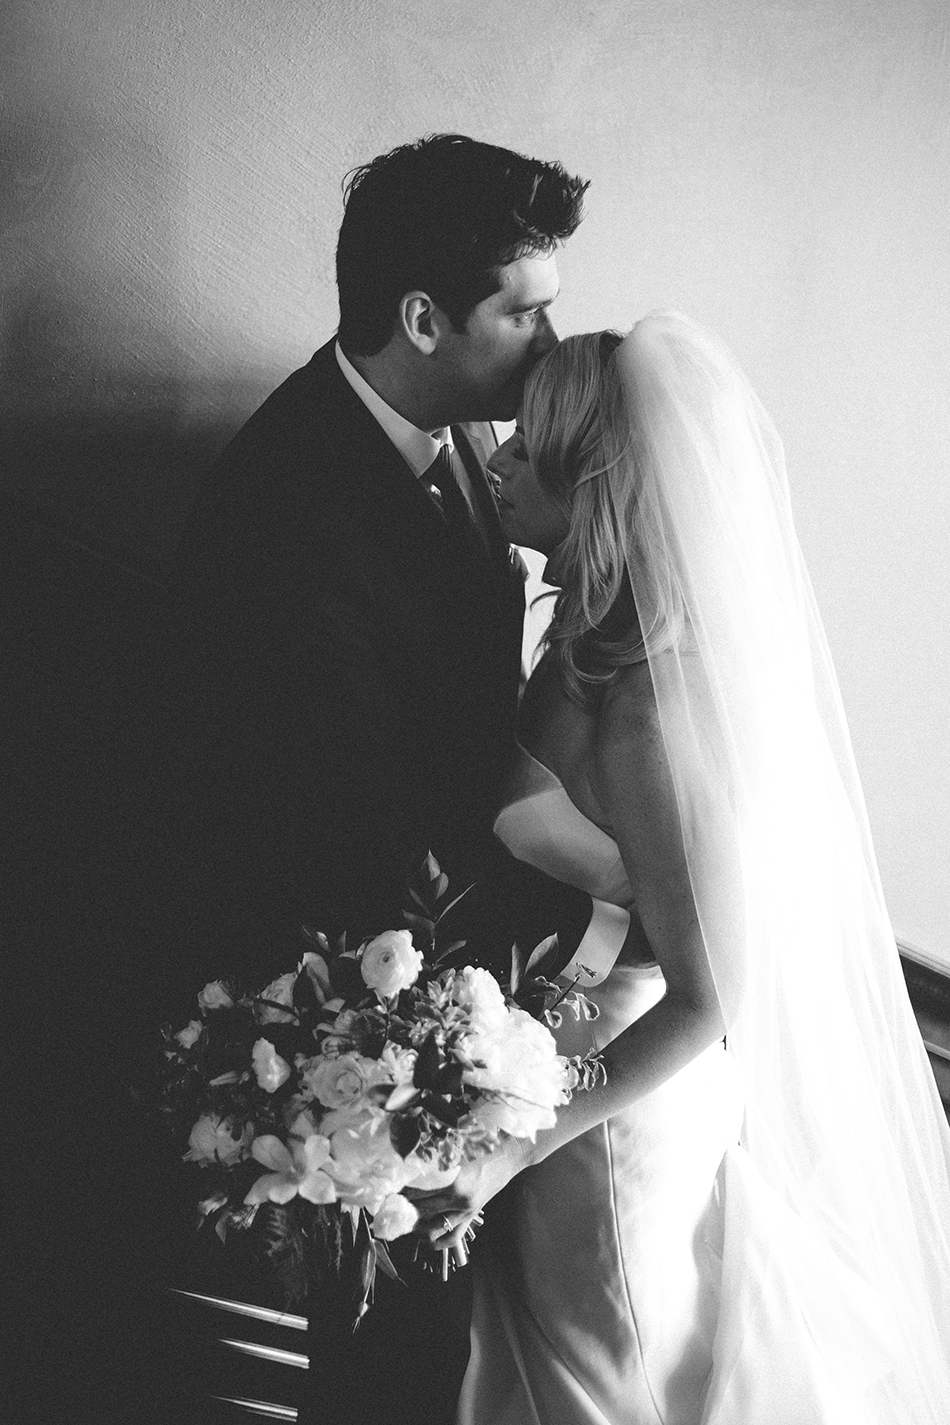 annamaier_realbride_minneapolis10.jpg